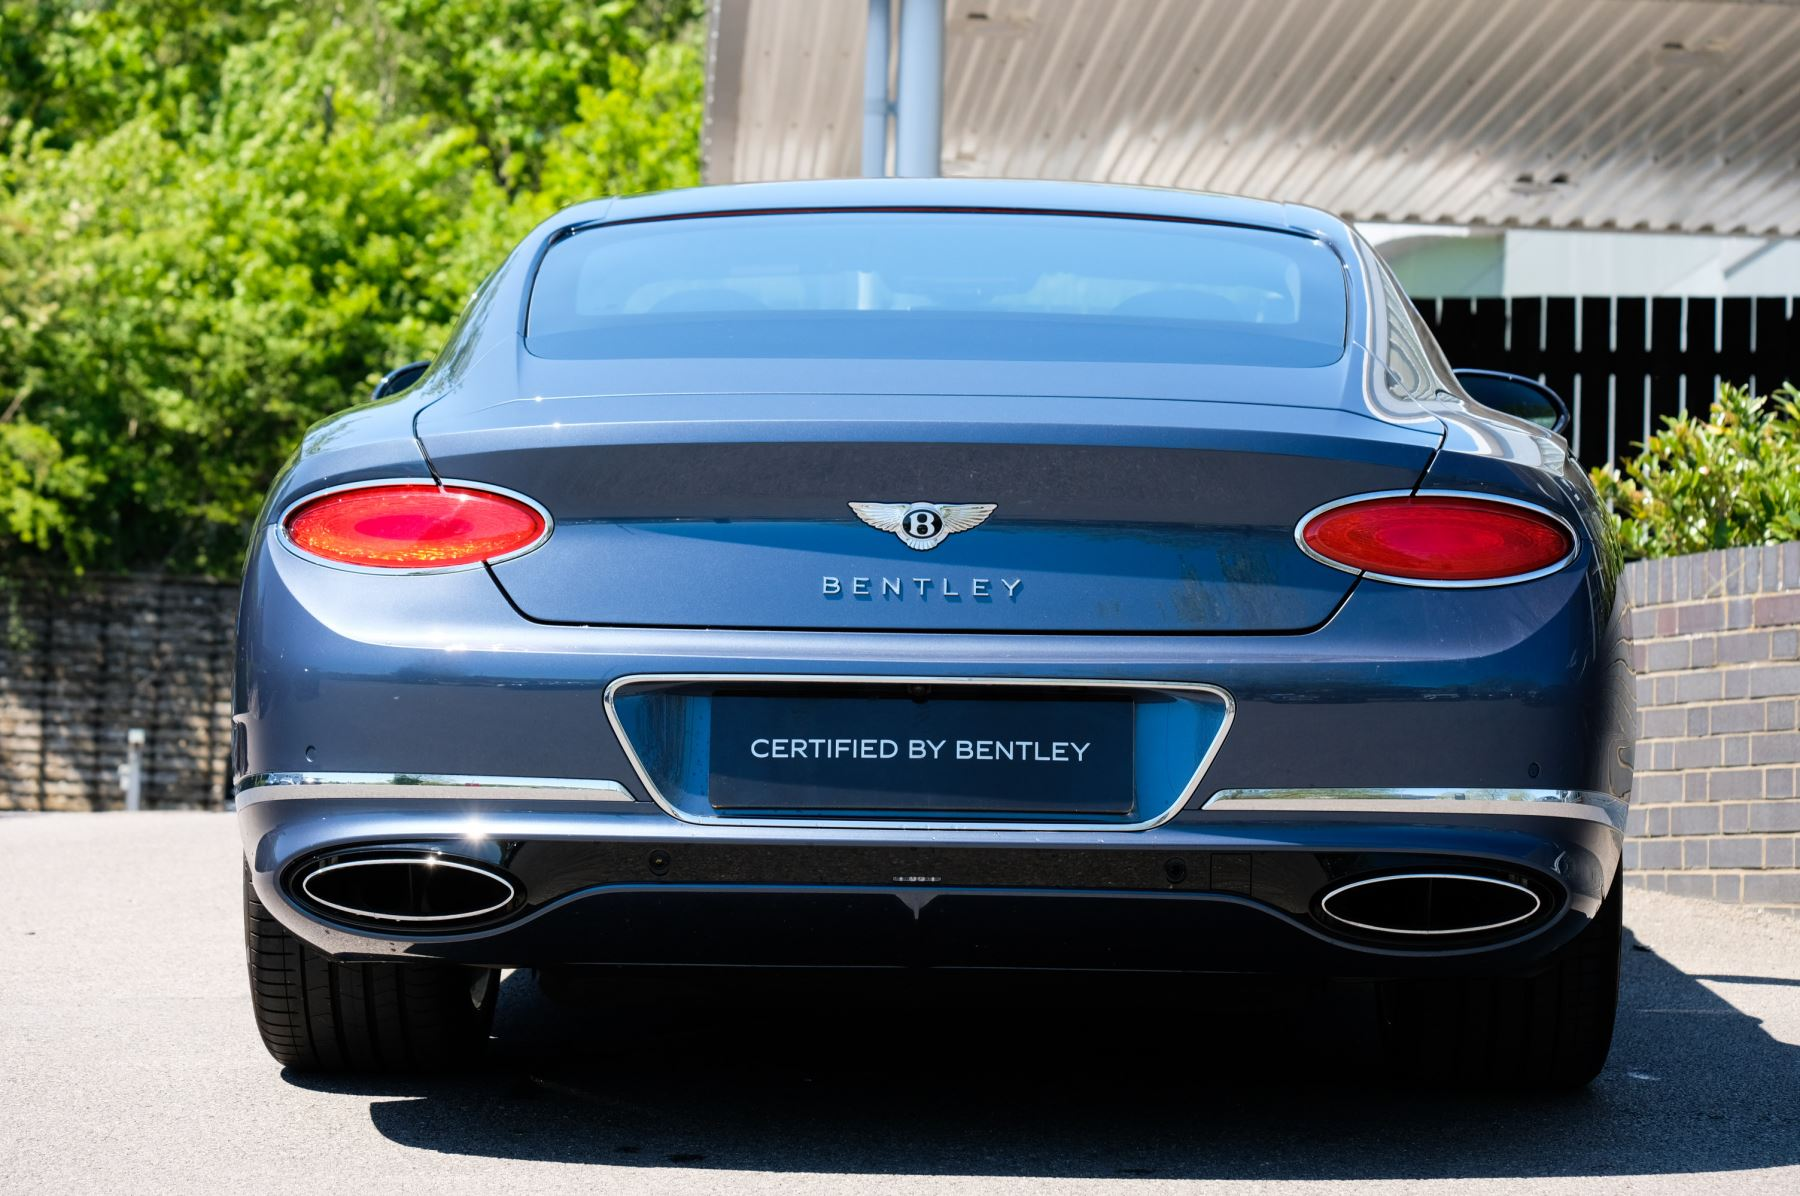 Bentley Continental GT 6.0 W12 - CITY + TOURING SPECIFICATION image 4